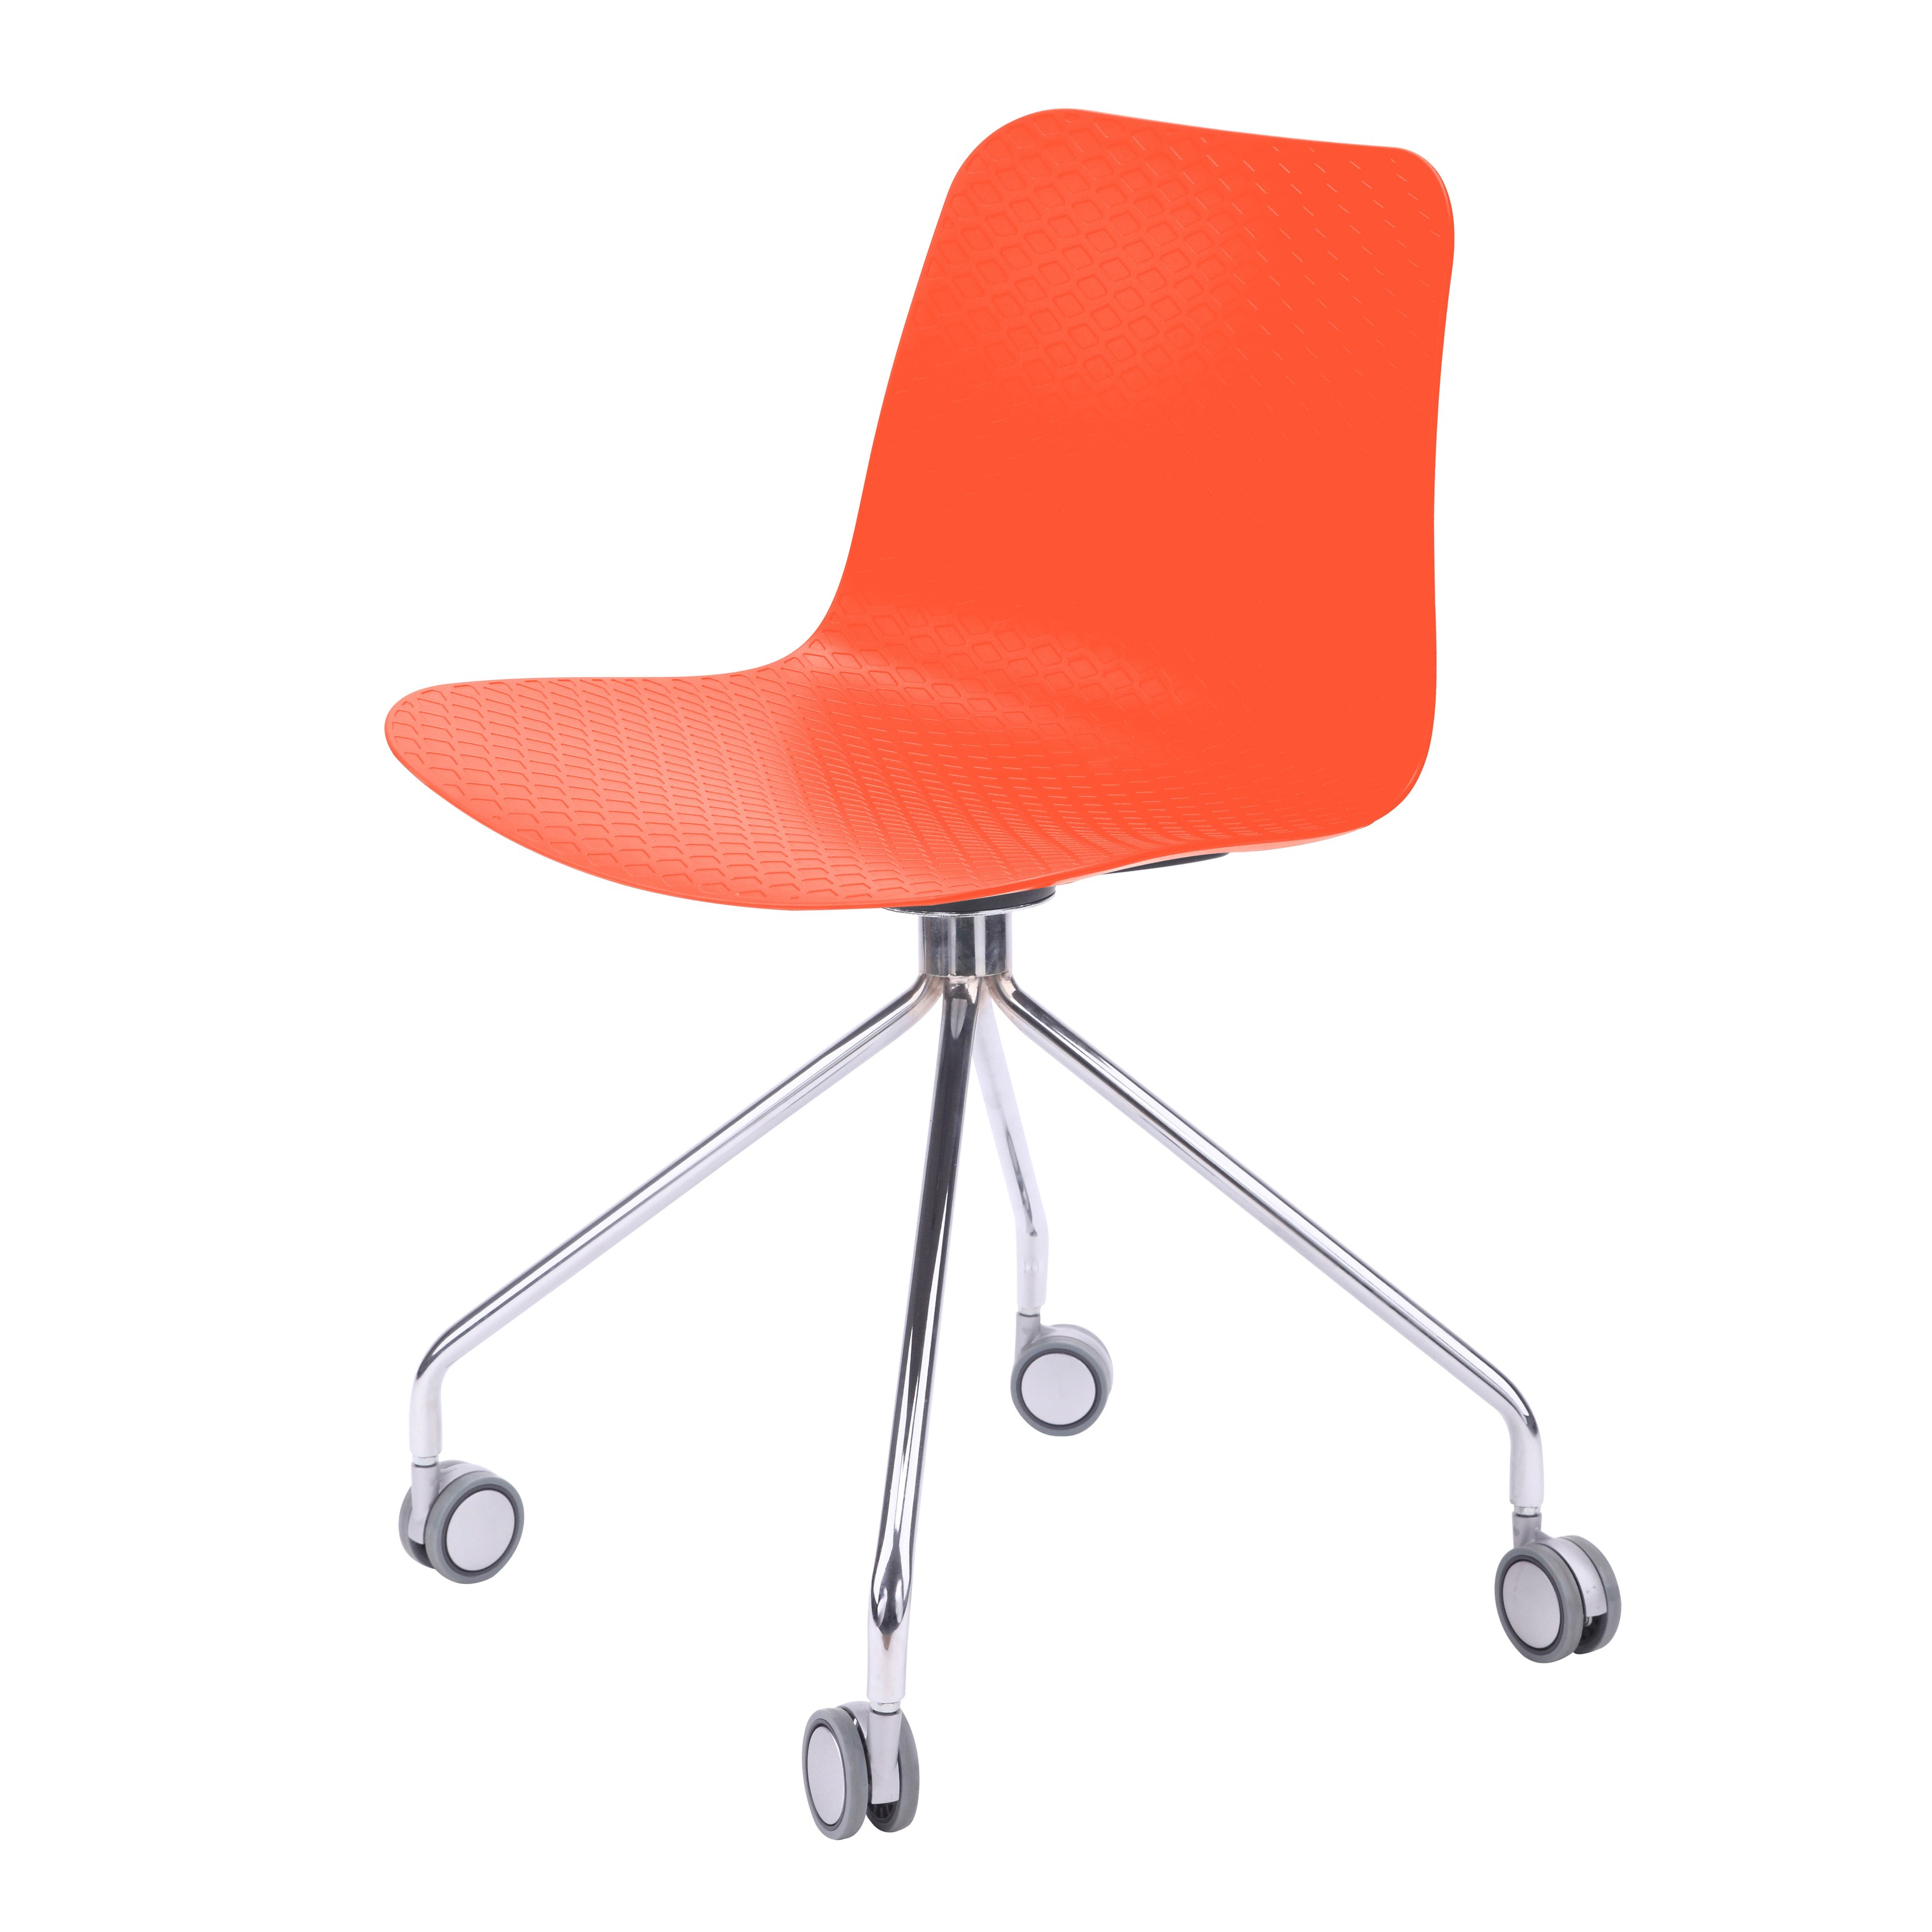 office chair orange cover hire portsmouth hebe series molded plastic designer